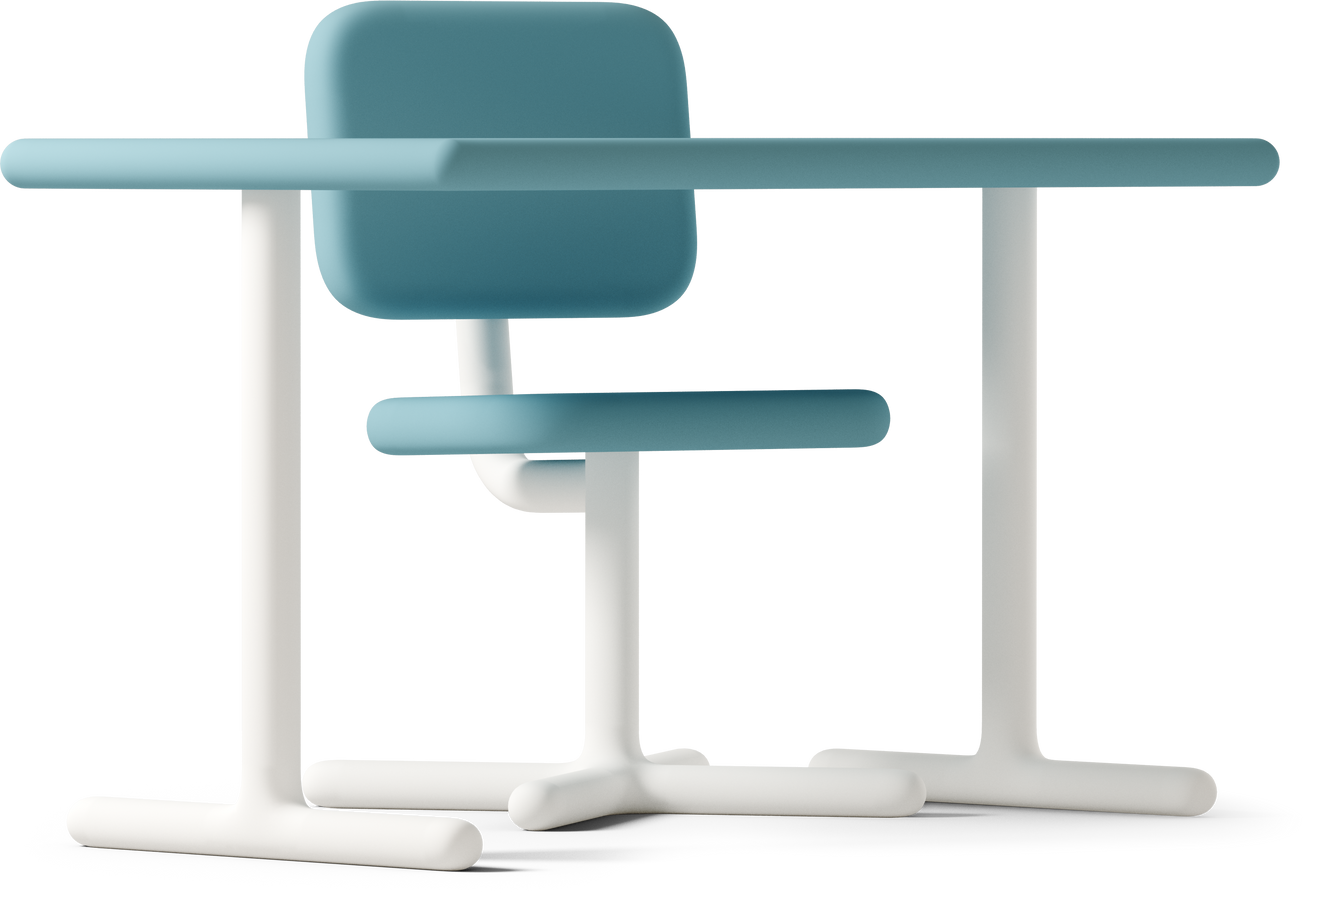 style table and chair Vector images in PNG and SVG   Icons8 Illustrations